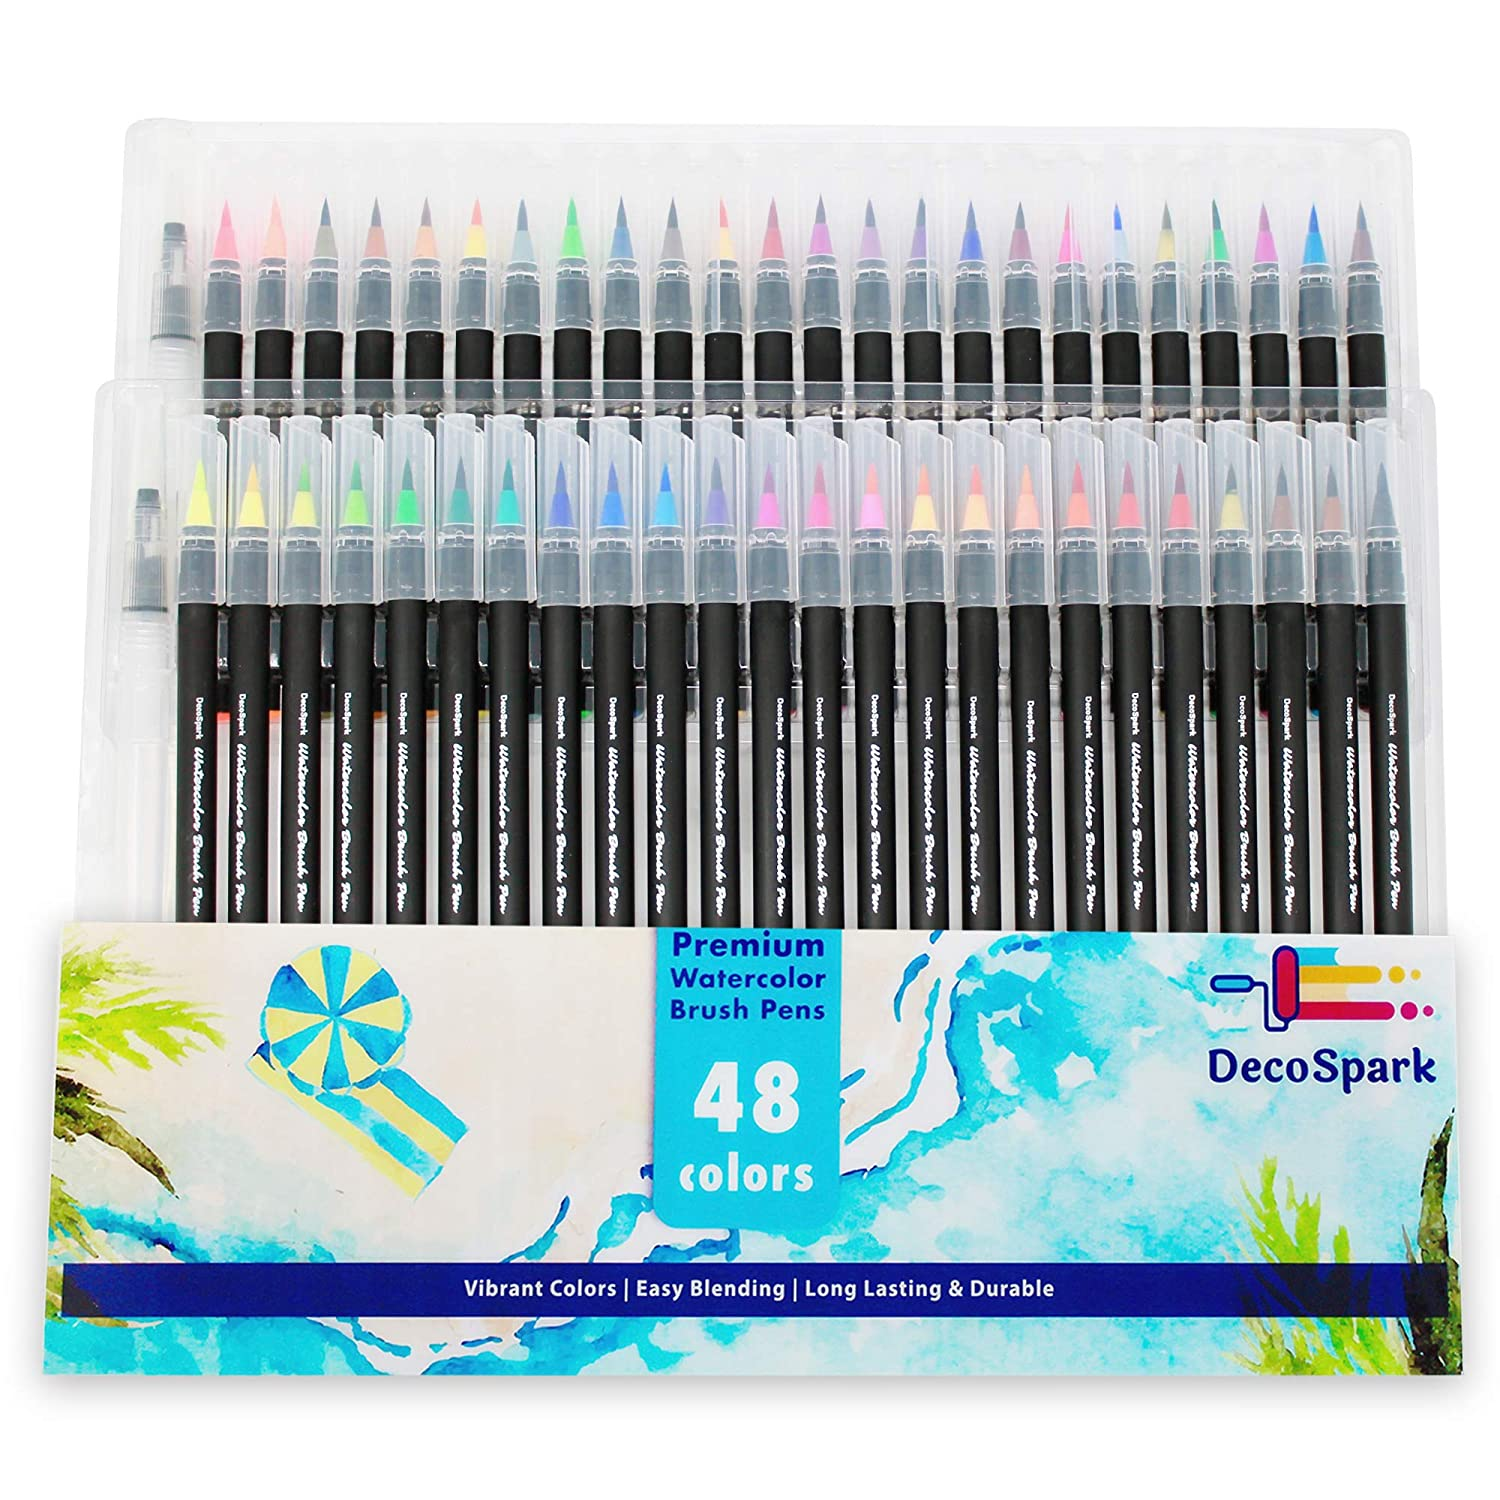 Watercolor Brush Pens Set | 20 Colors | Best Real Soft Brush Markers for Adult and Kids Coloring Books, Drawing, Calligraphy, Writing and More | Ultra Bright Pigment, Non-Toxic, Acid-Free | DecoSpark